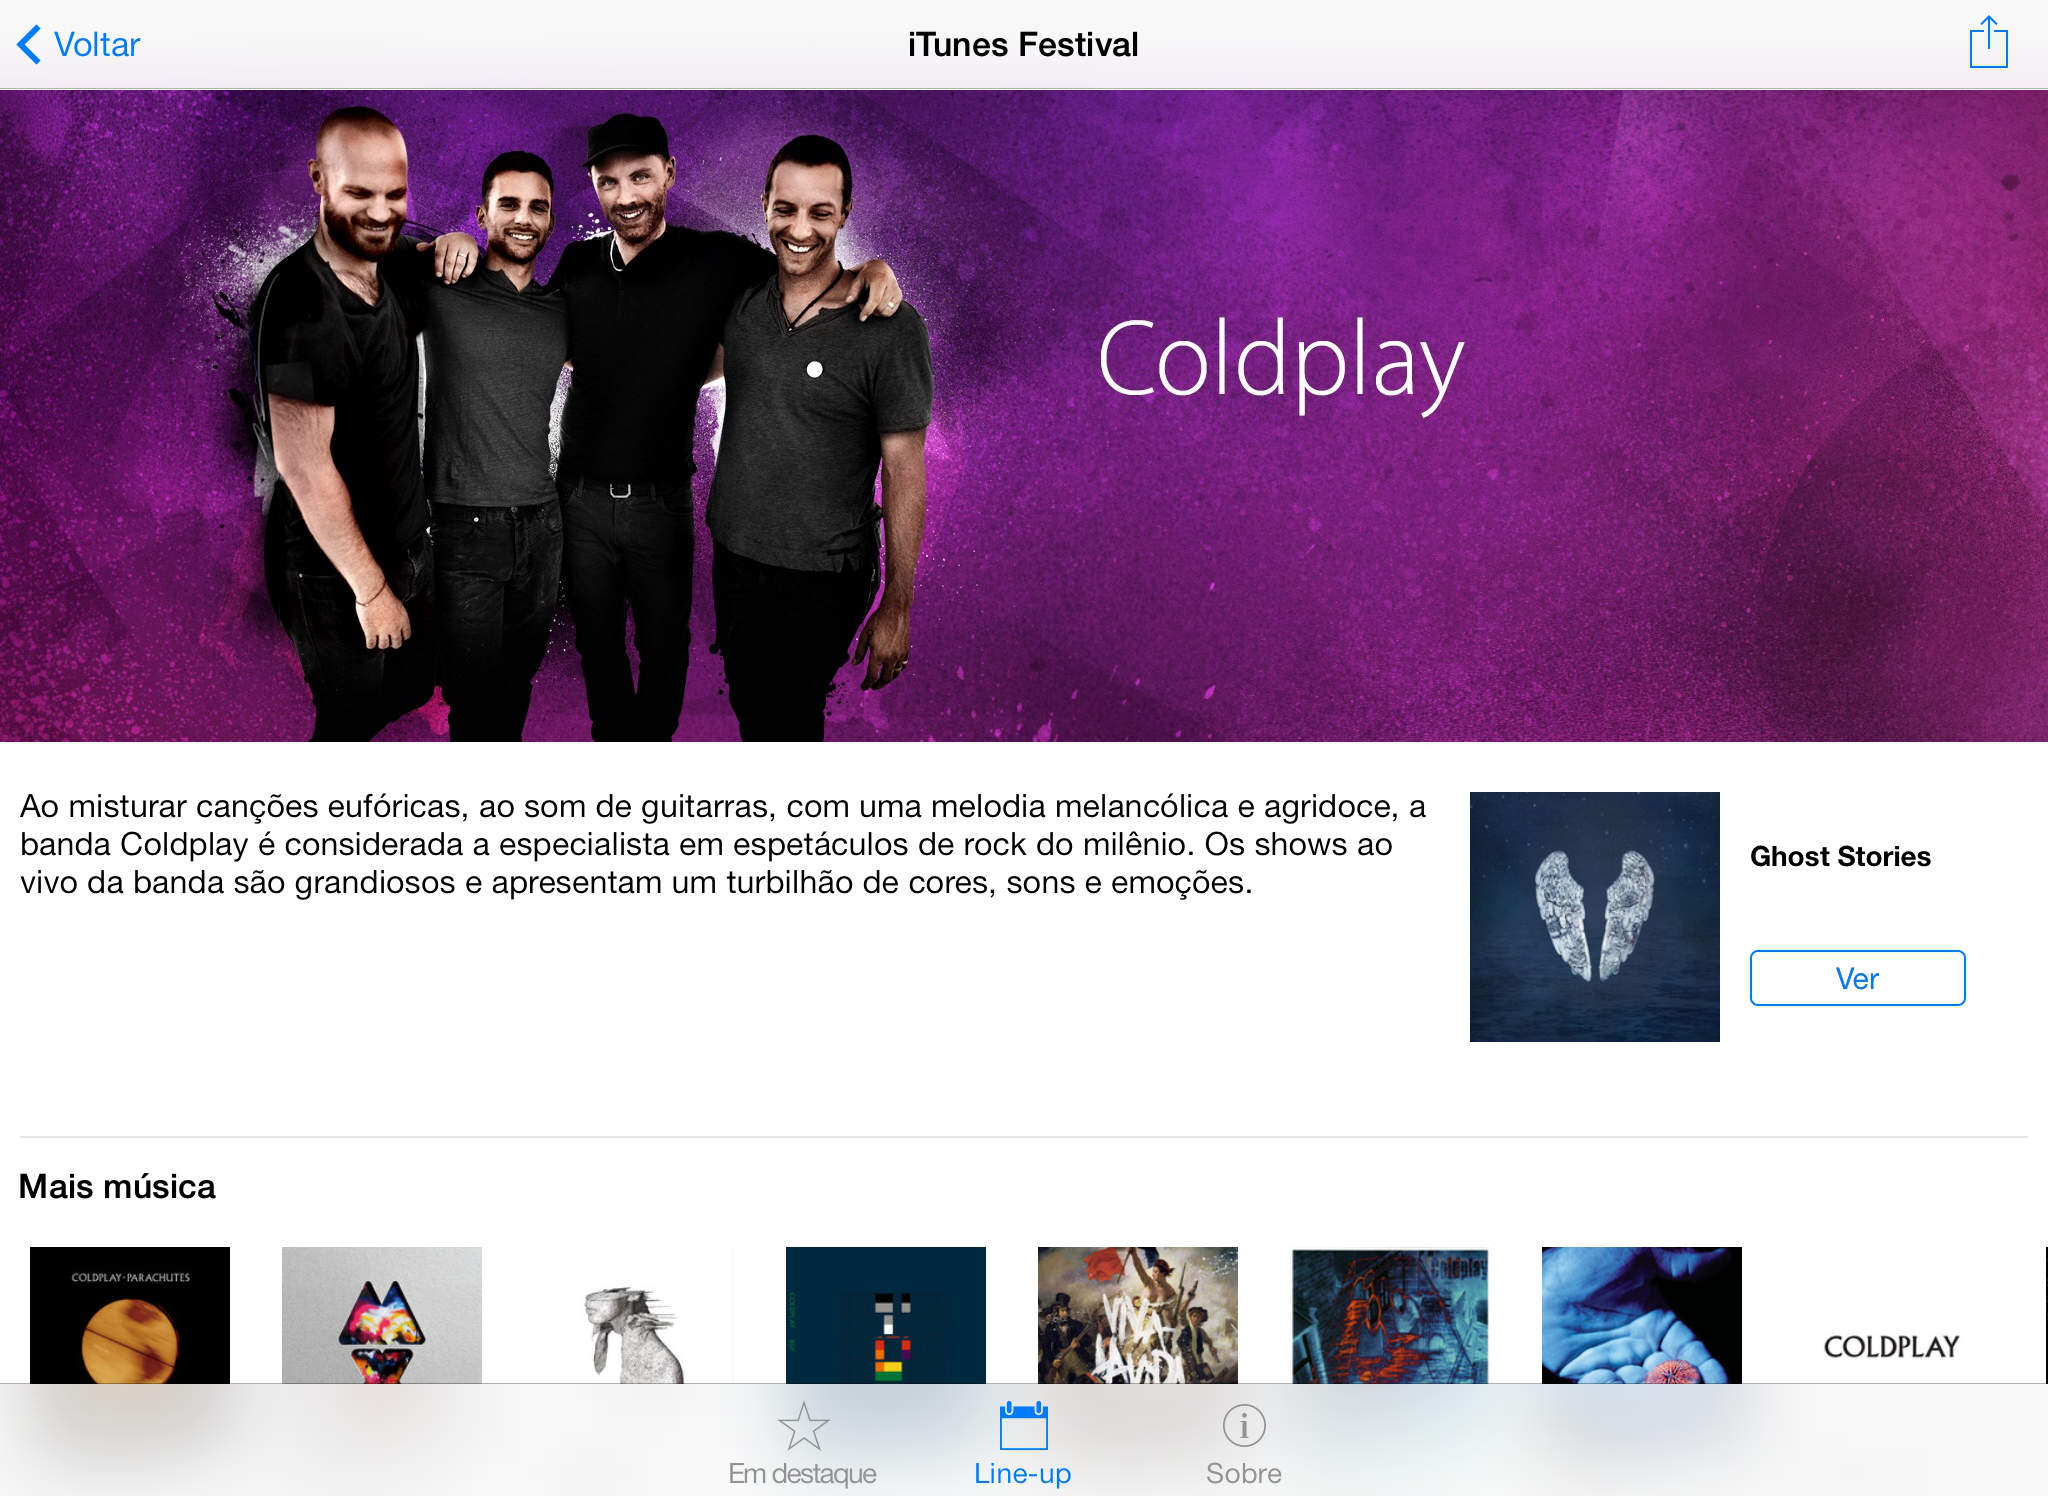 iTunes Festival no iPad